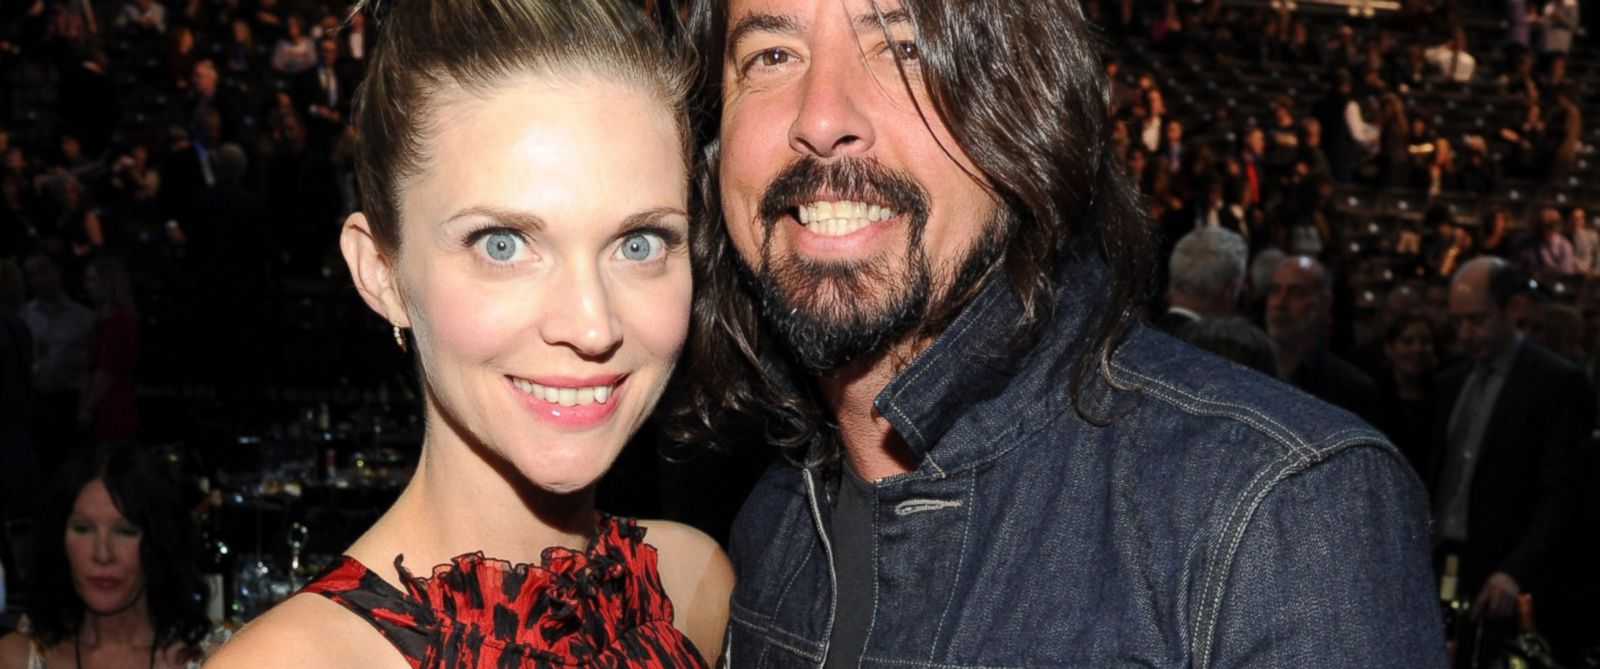 PHOTO: Jordyn Blum and Dave Grohl attend the 29th Annual Rock And Roll Hall Of Fame Induction Ceremony at Barclays Center in Brooklyn, New York, April 10, 2014.